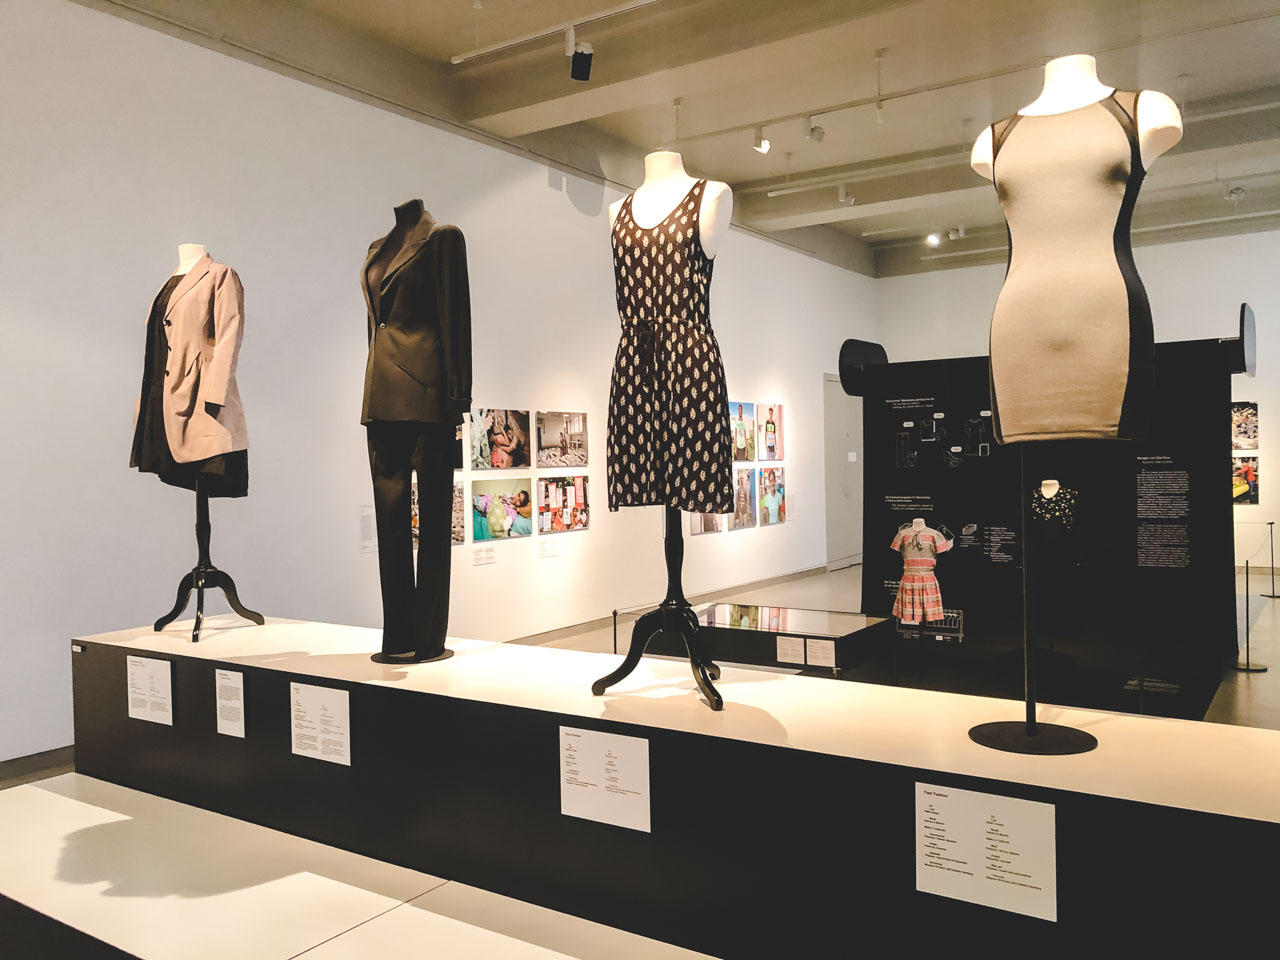 Dresses, a blazer and a suit on display at the Museum of European Cultures in Berlin